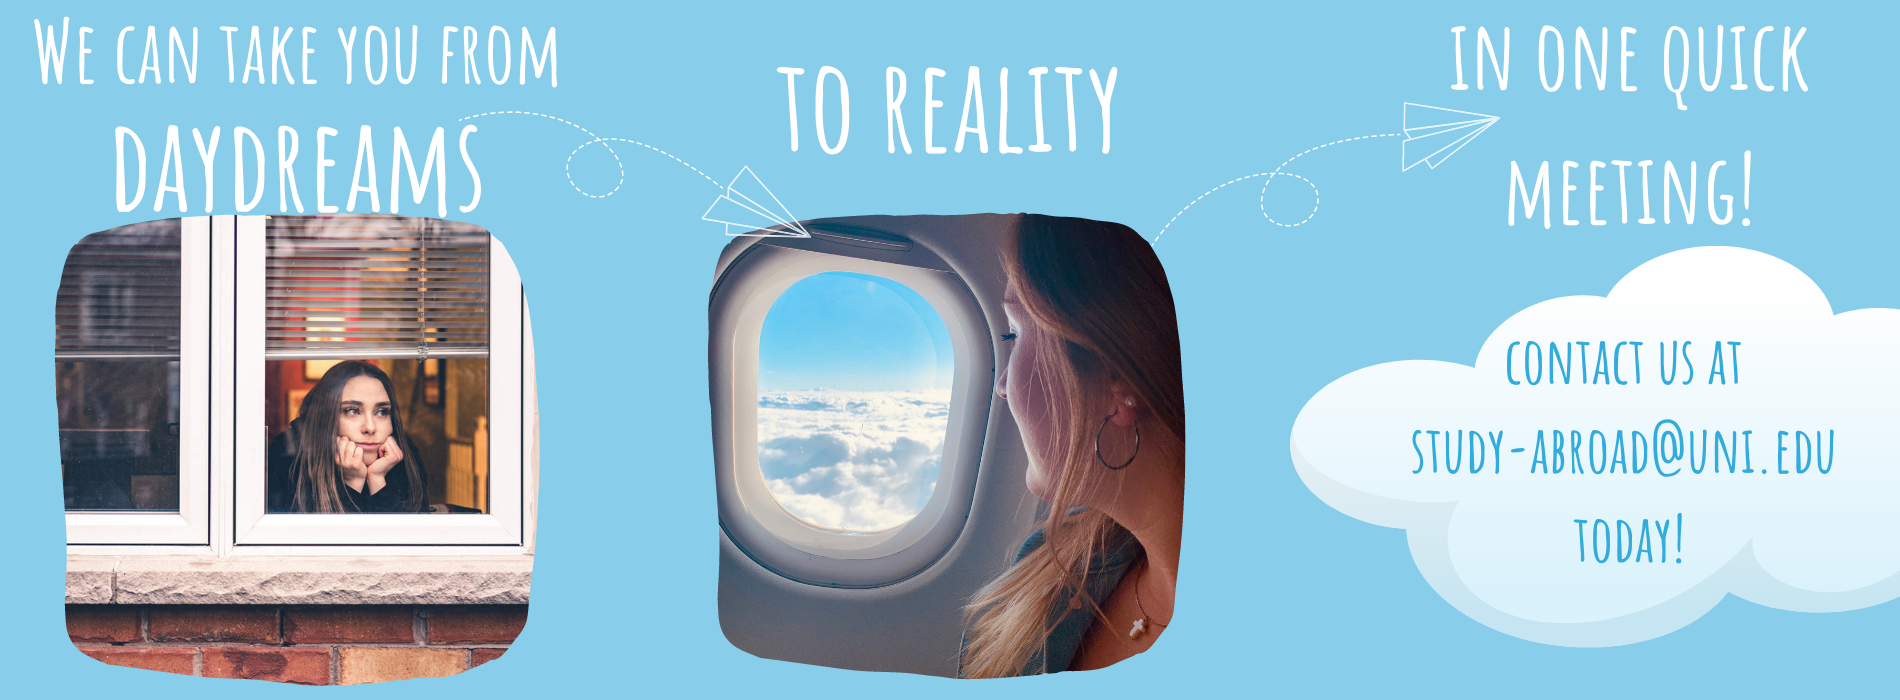 We can take you from daydreams to reality!